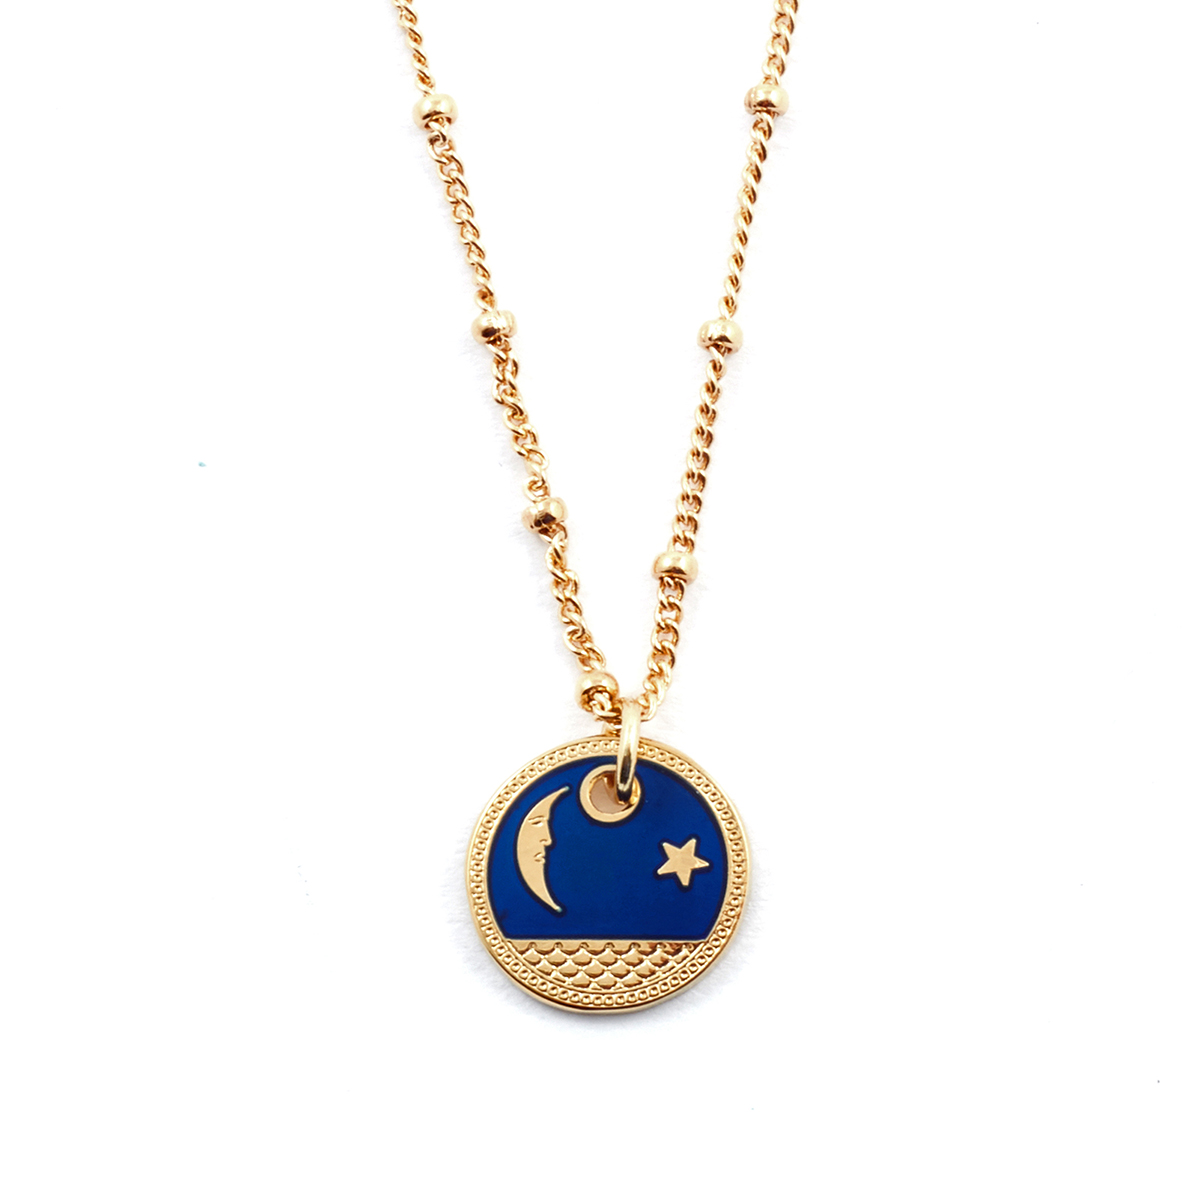 Enamel star and moon pendant by Mirabelle